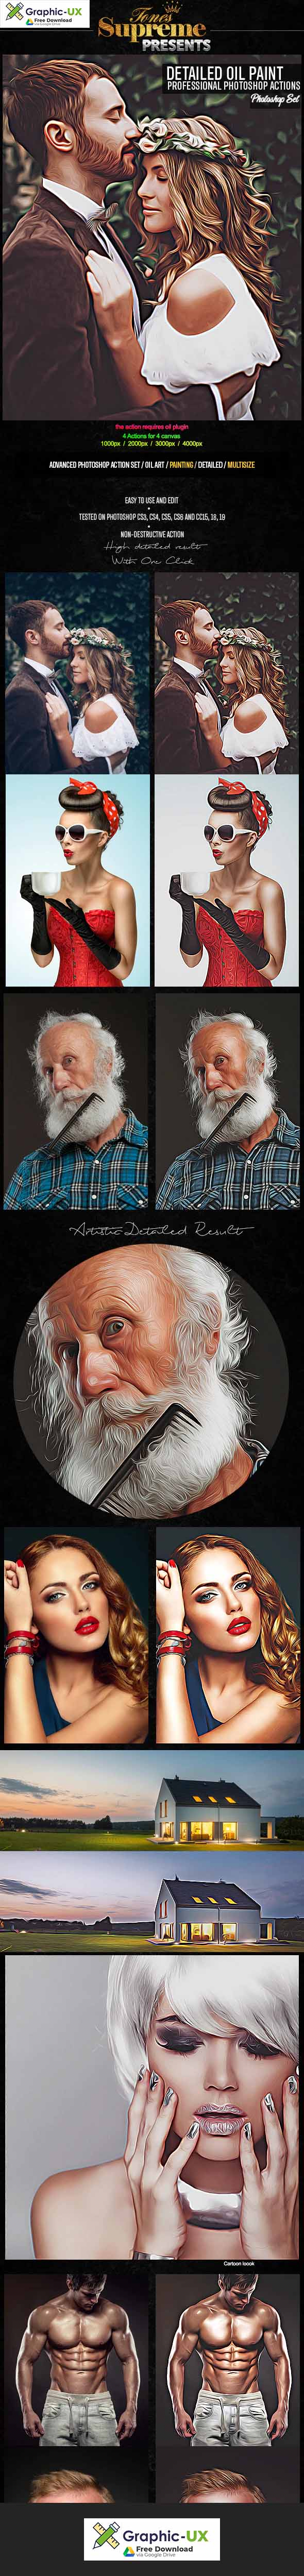 Detailed Oil Painting Photoshop Actions